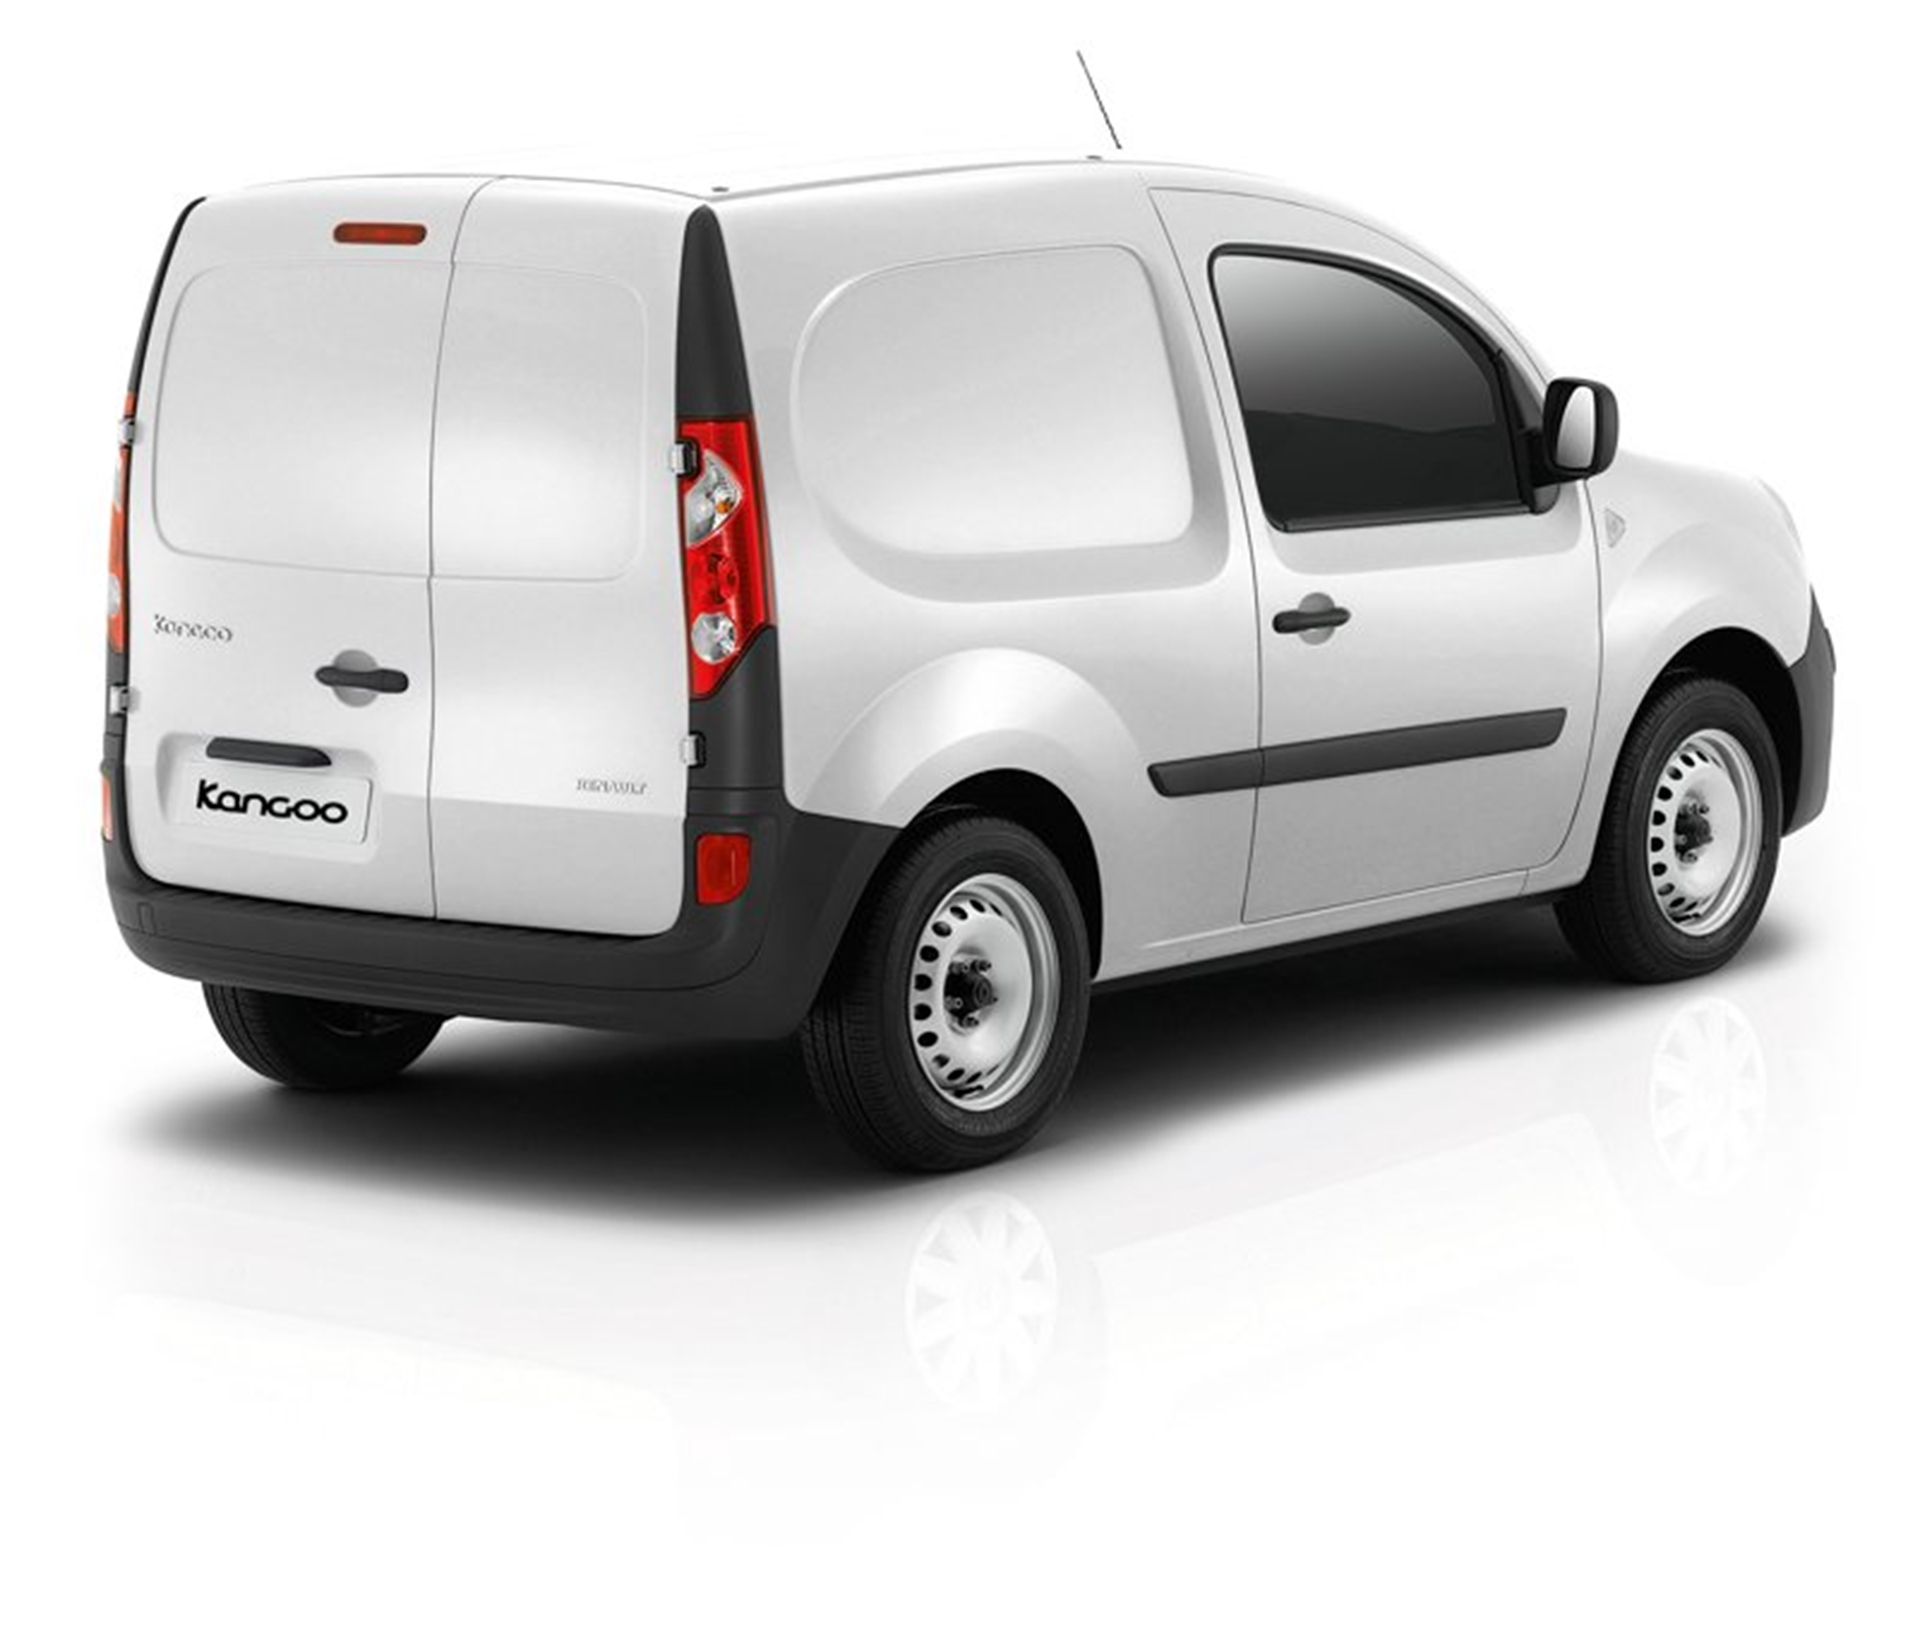 Renault Kangoo Rear View